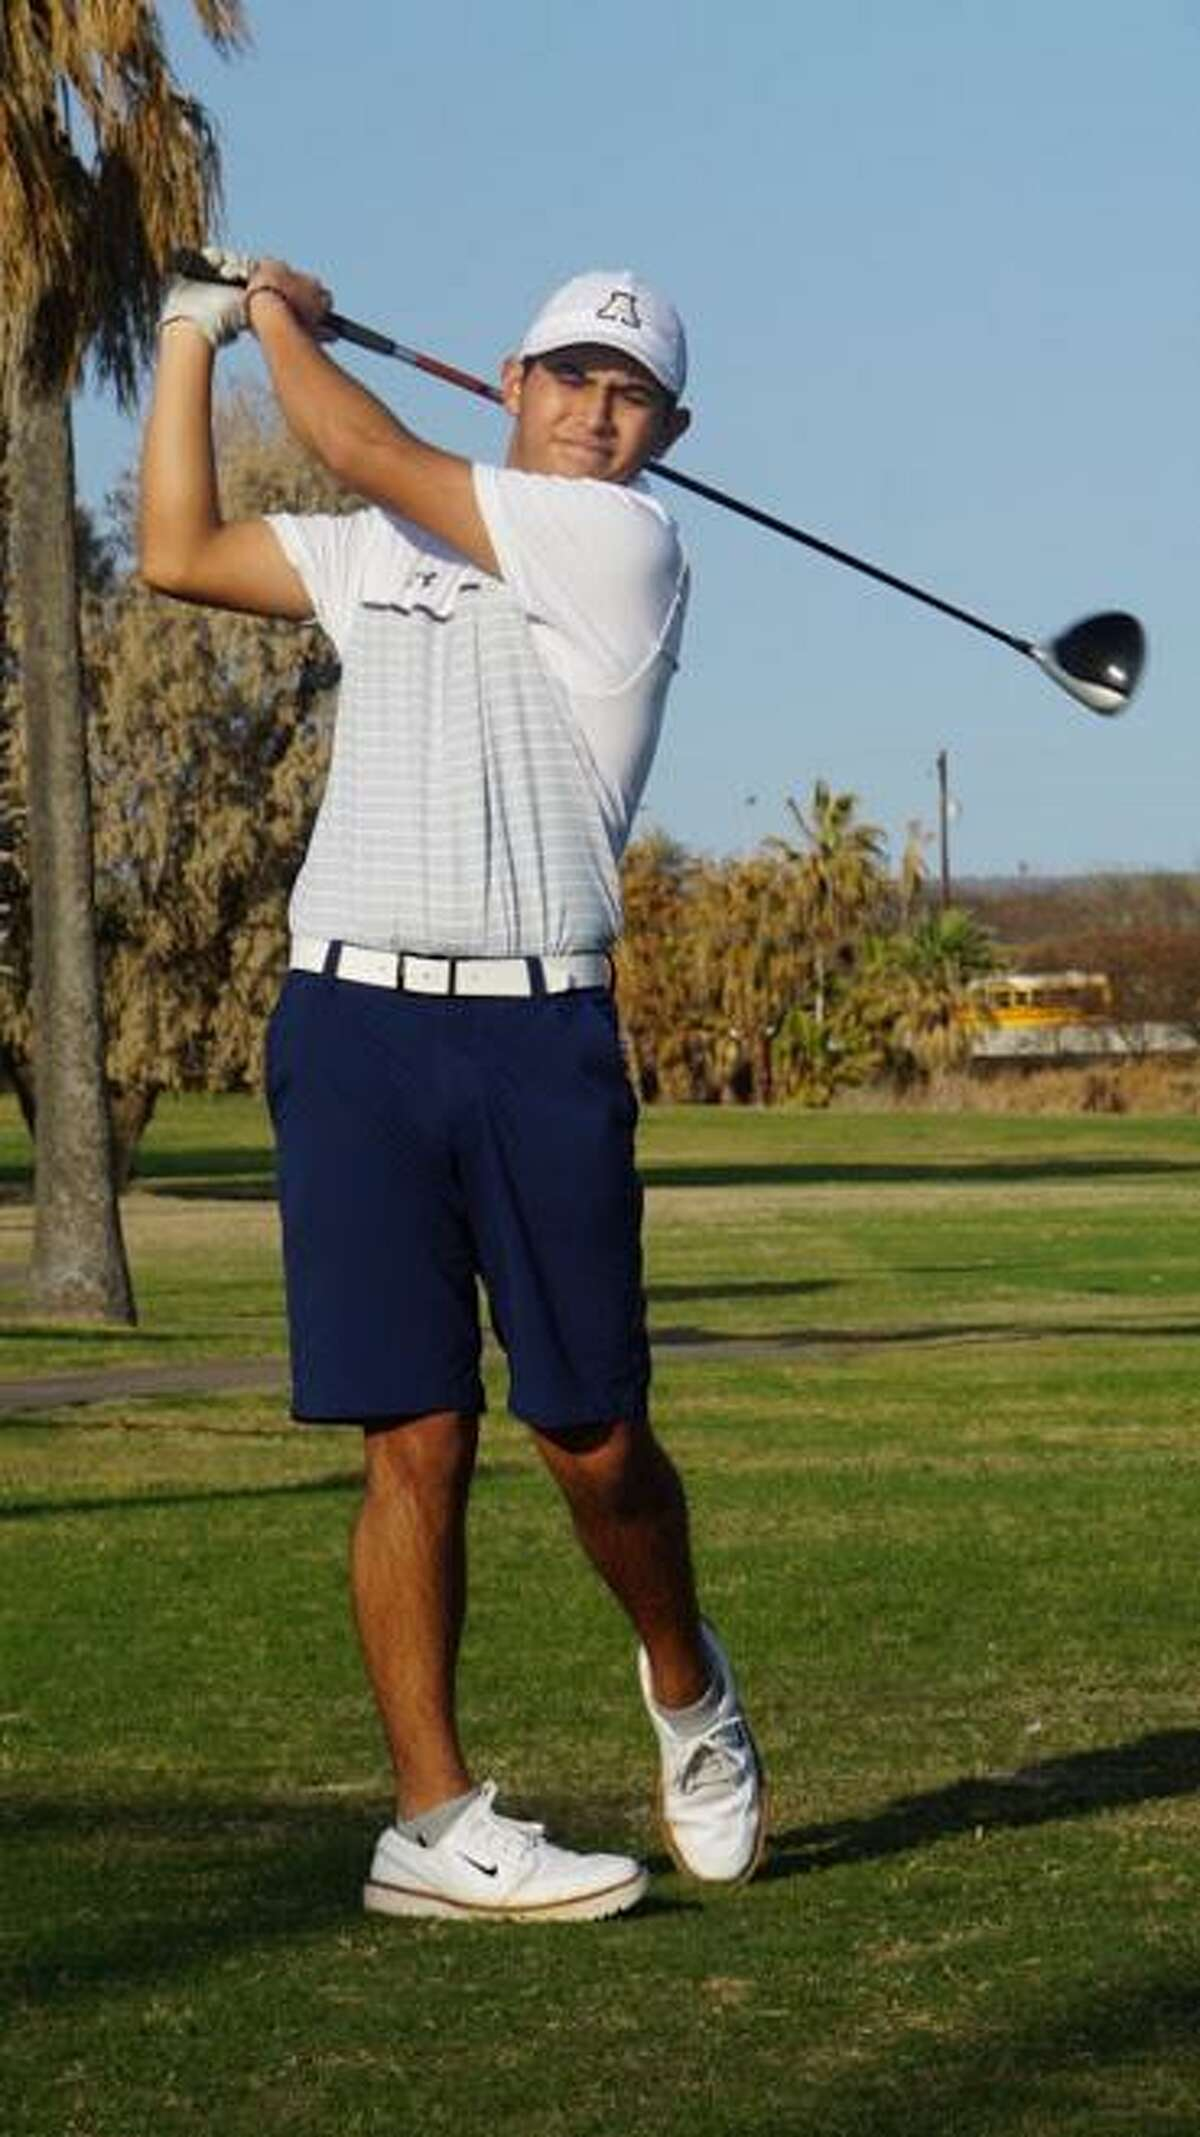 Alexander senior Omar Cantu is tied for the individual lead after the opening round of the District 30-6A to help the Bulldogs' Gold team sit in first place heading into Thursday's final round at the Max A. Mandel Municipal Golf Course.